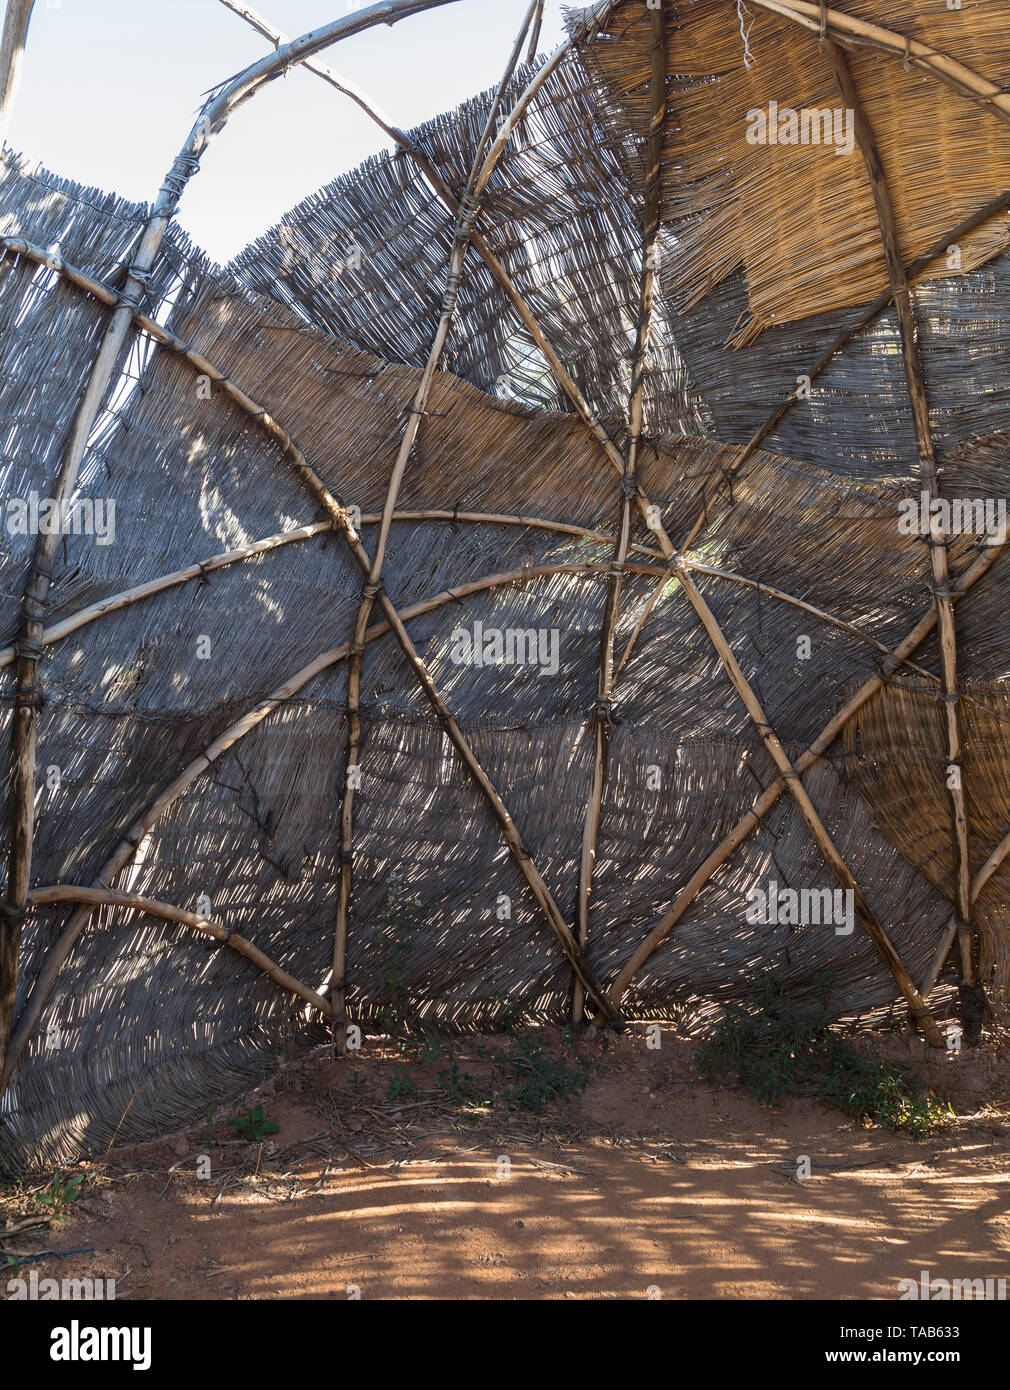 Interior construction of a Nama Kookskerm, a Khoisan reed hut for cooking and socialising - Stock Image